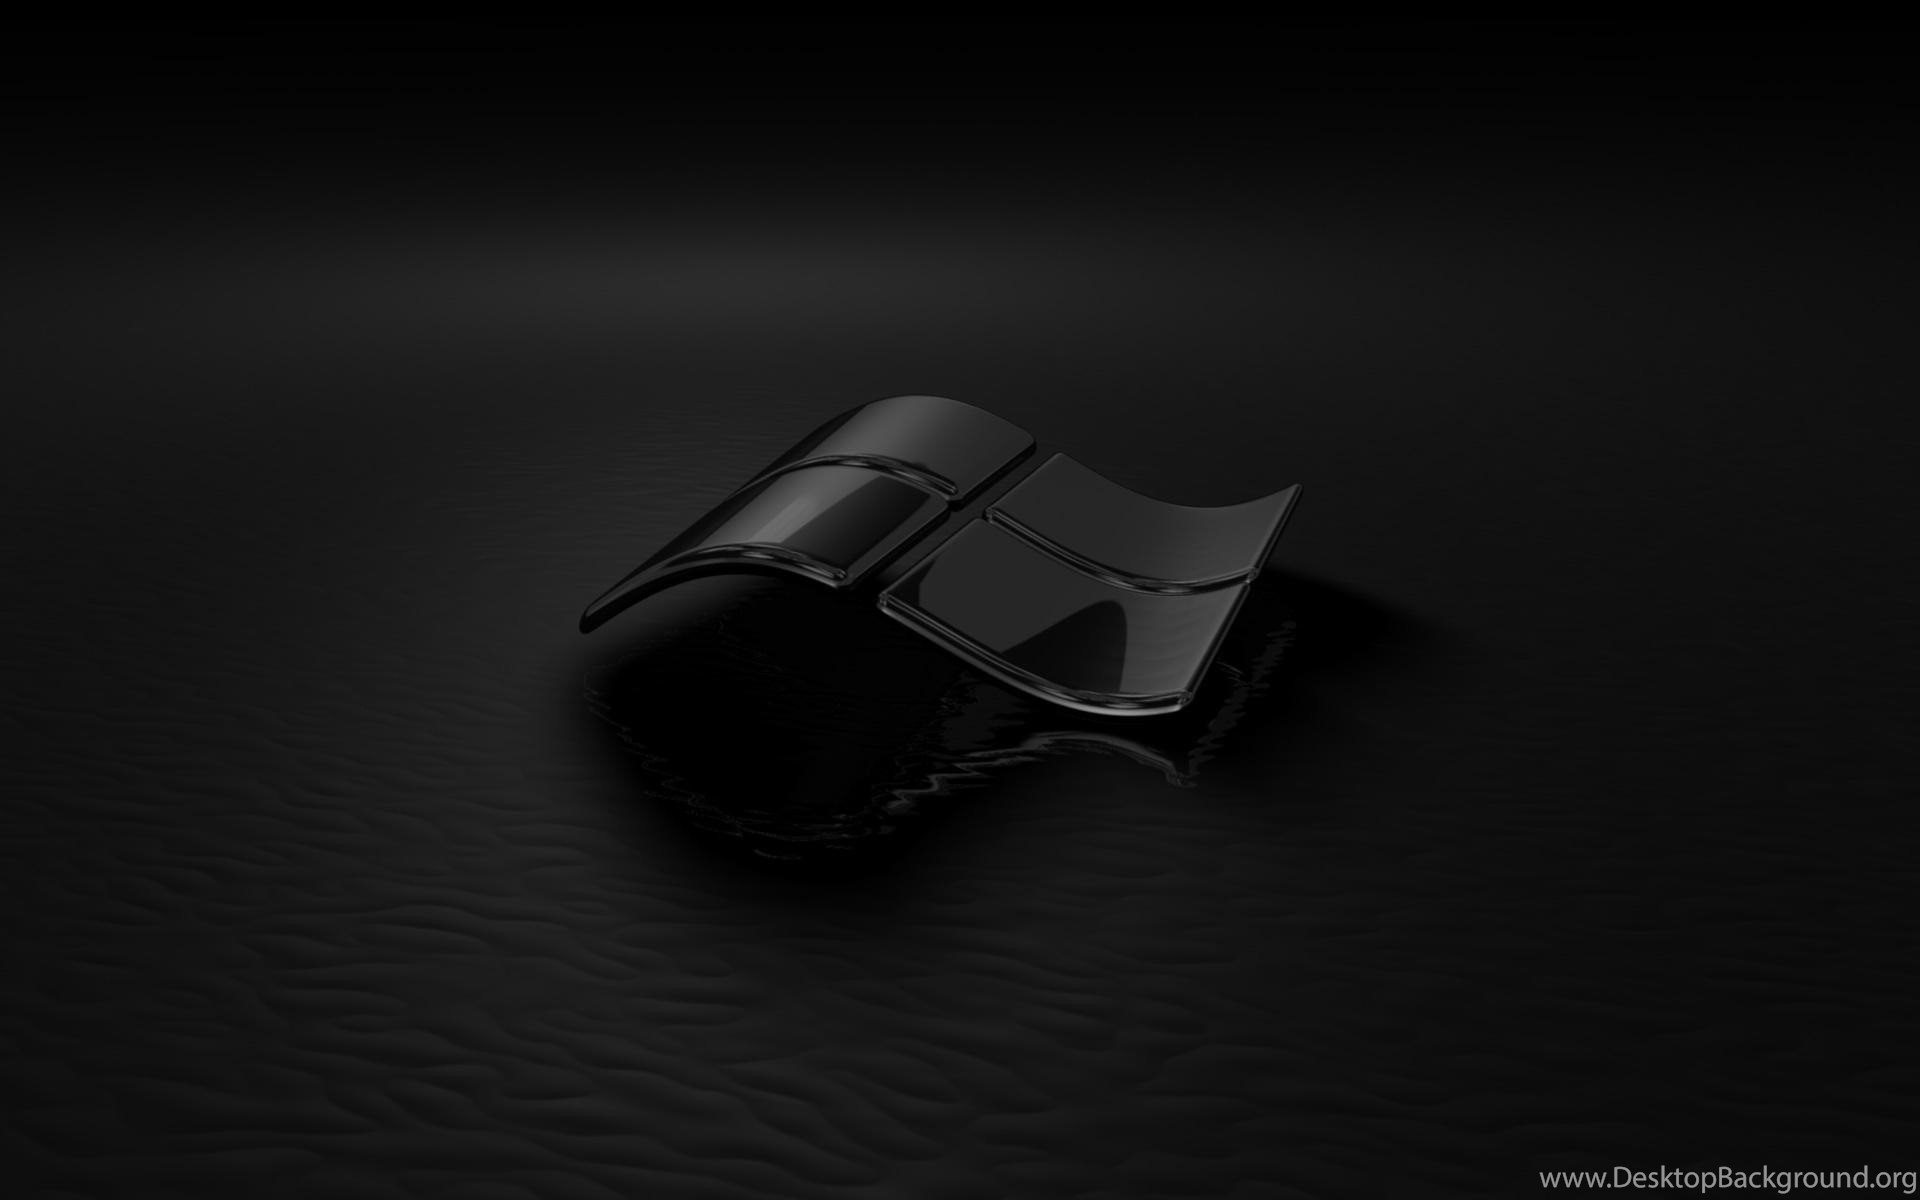 dark windows logo wallpapers hd wallpapers desktop background